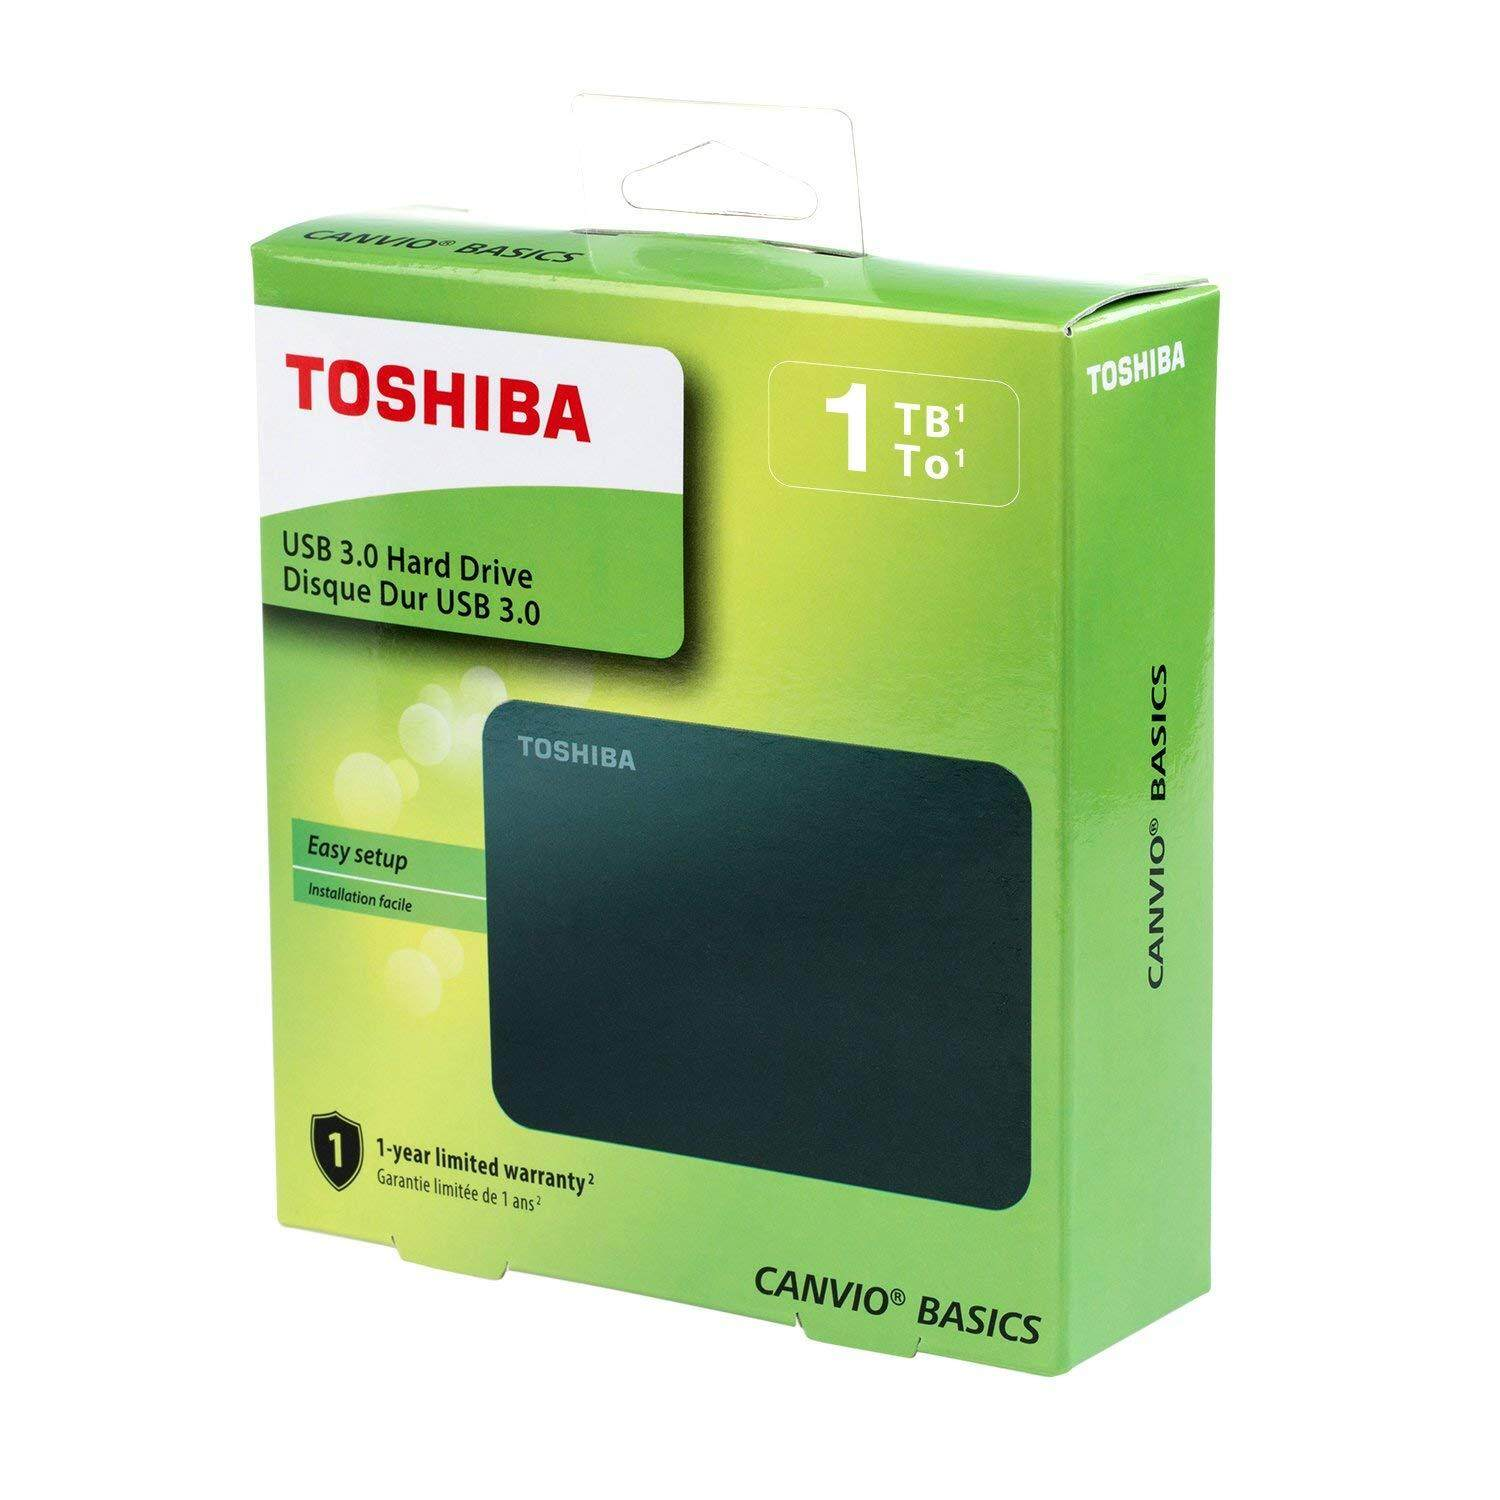 Toshiba Canvio Ready Basics 1TB Portable External Hard Drive HDD USB 3 0  Free Soft Pouch (HDTB410AK3AA)